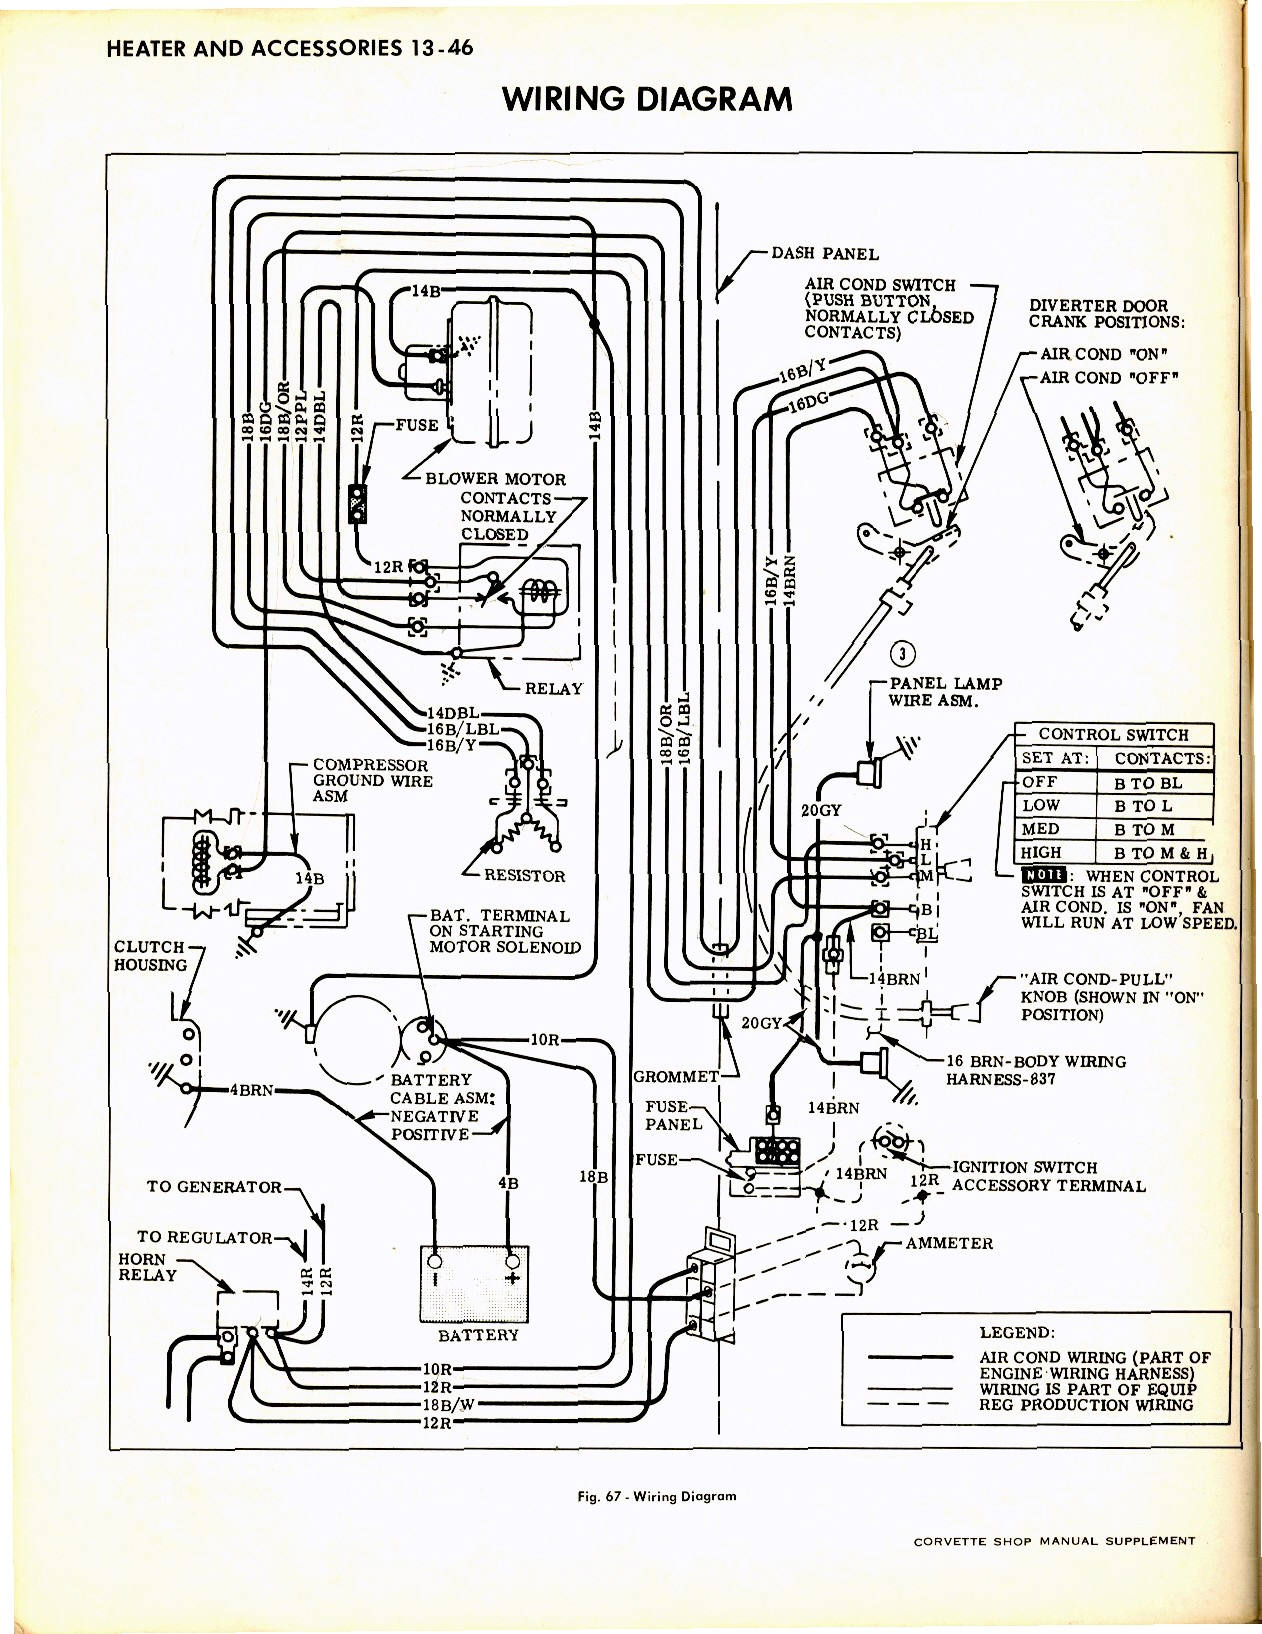 c5 corvette engine diagram 2008 corvette engine diagram wiring Corvette ECM Wiring Diagram i need a 1965 wiring diagram corvetteforum chevrolet corvette c5 corvette engine diagram 65 corvette wiring diagrams